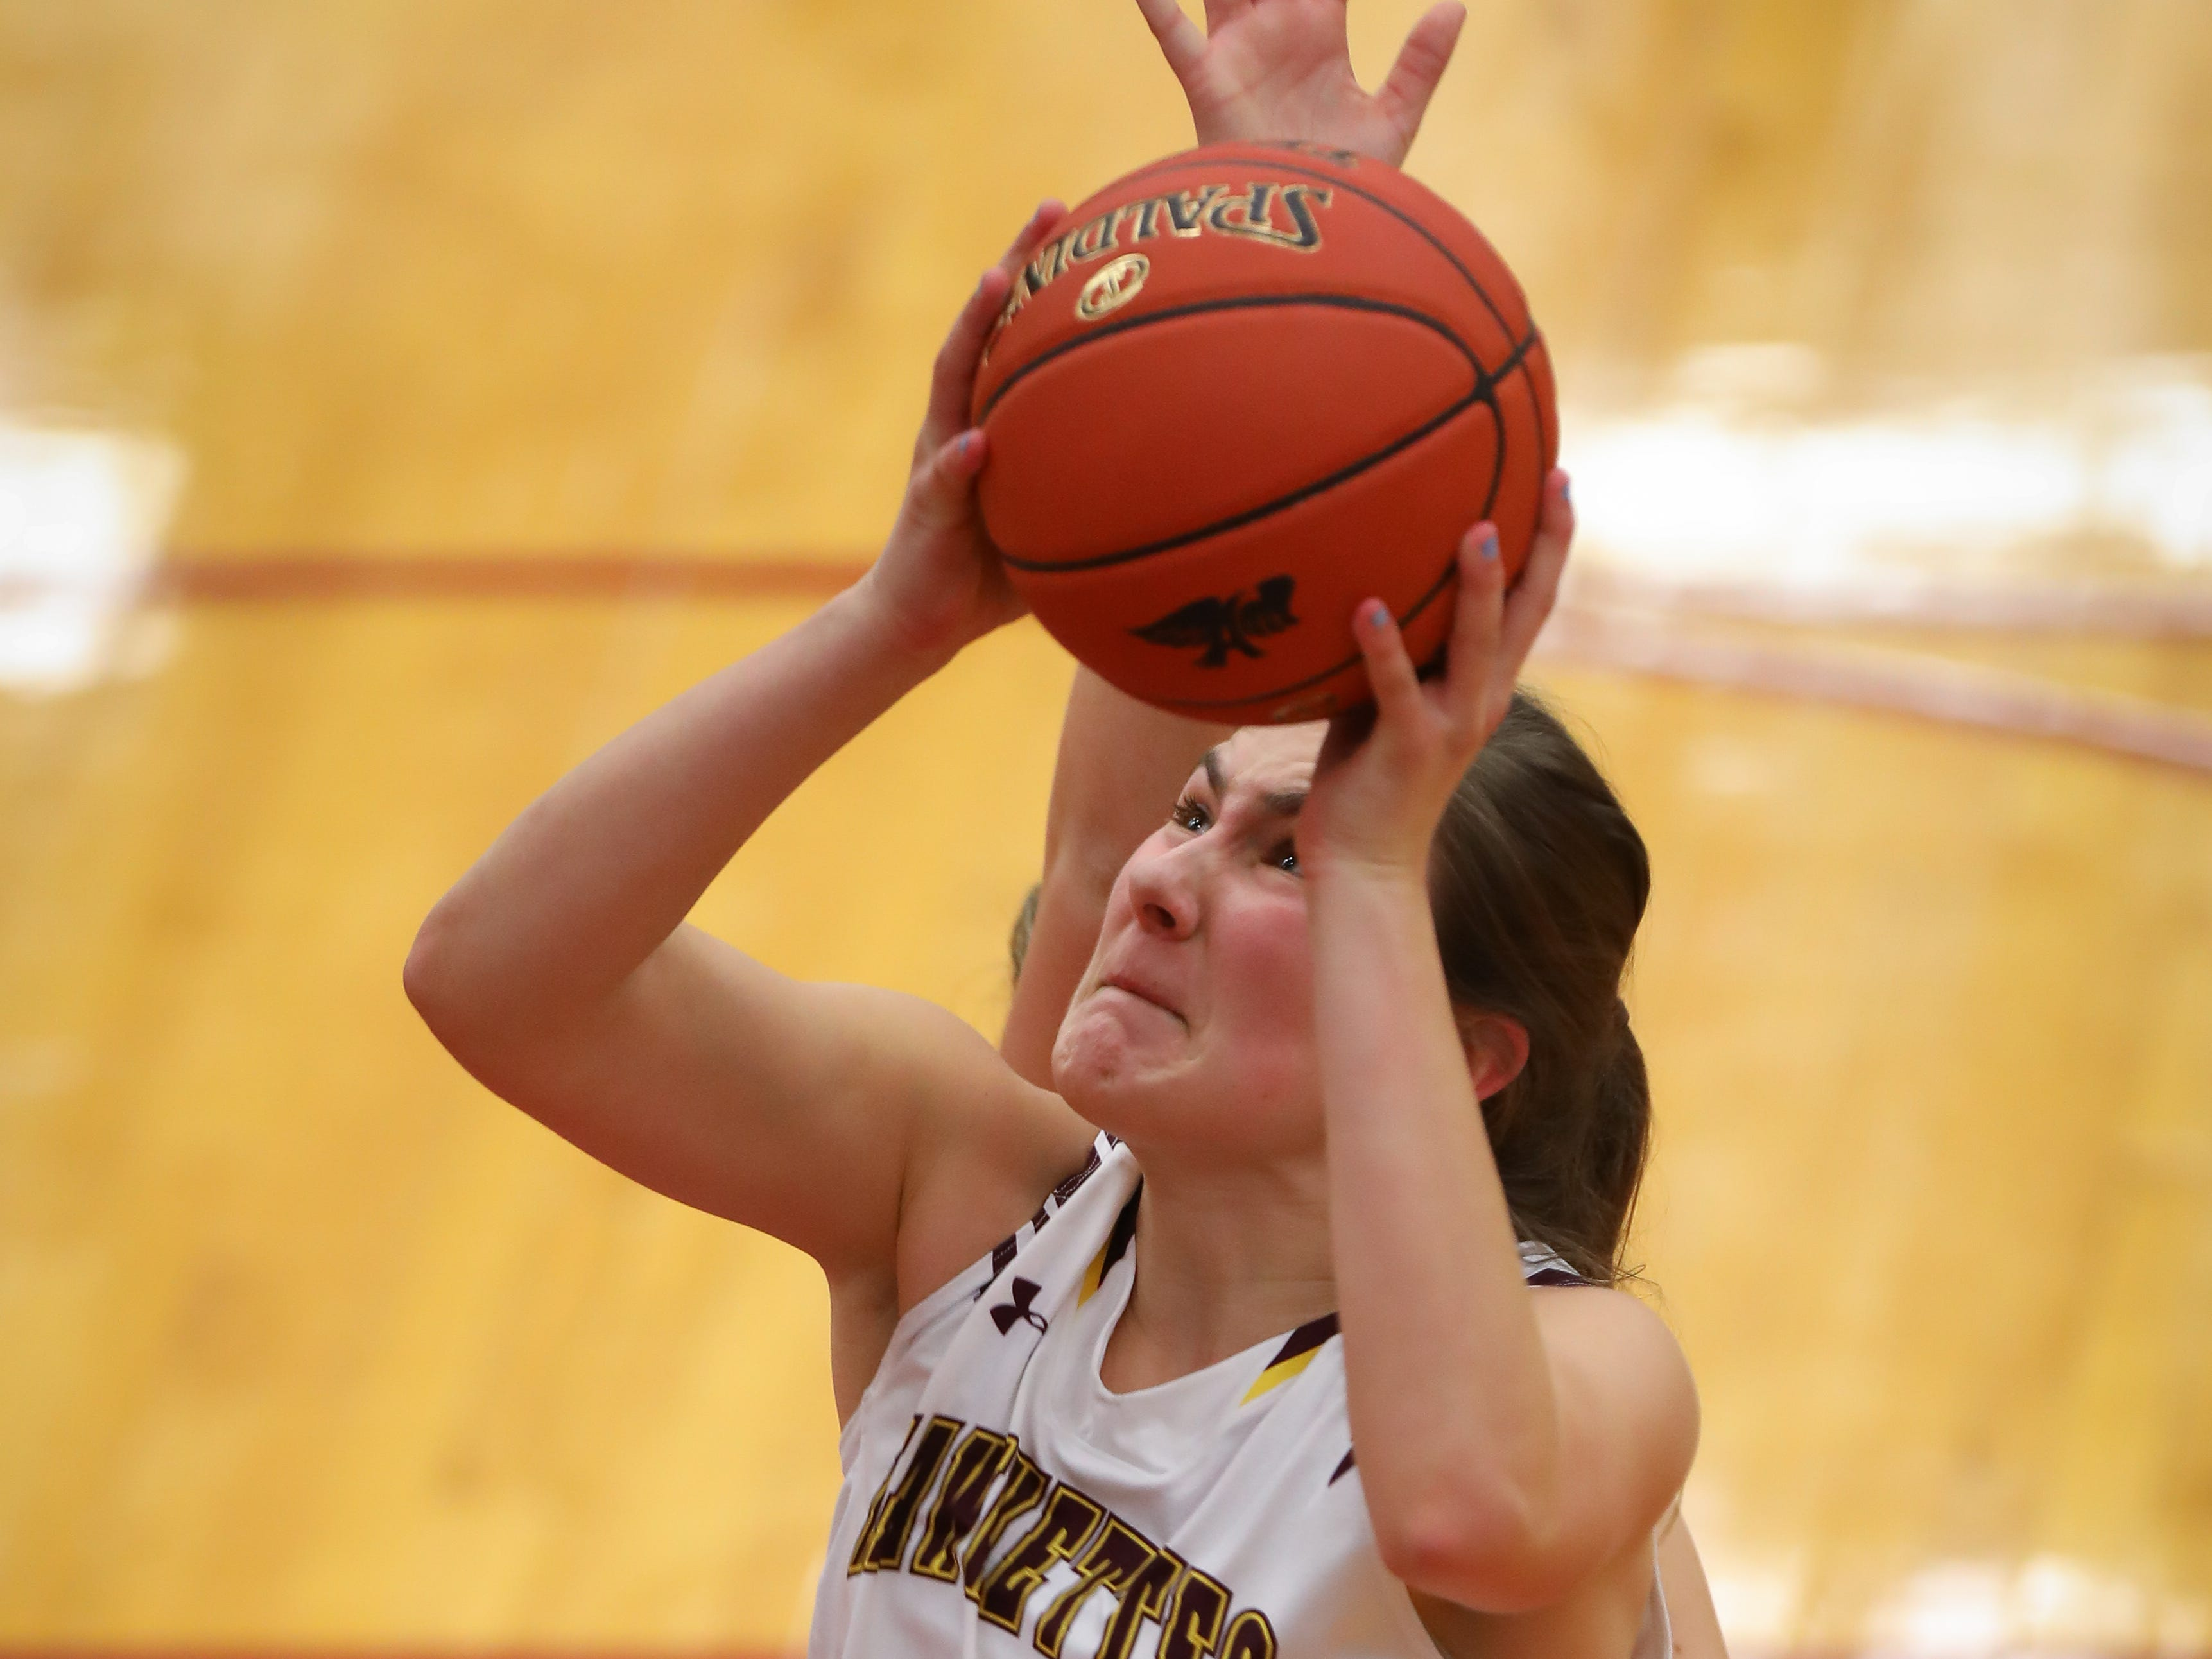 Ankeny junior Isabelle Vacek goes for a lay-up during a girls high school basketball game between the Lincoln Railsplitters and the Ankeny Hawks at Ankeny High School on Dec. 4, 2018 in Ankeny, Iowa.